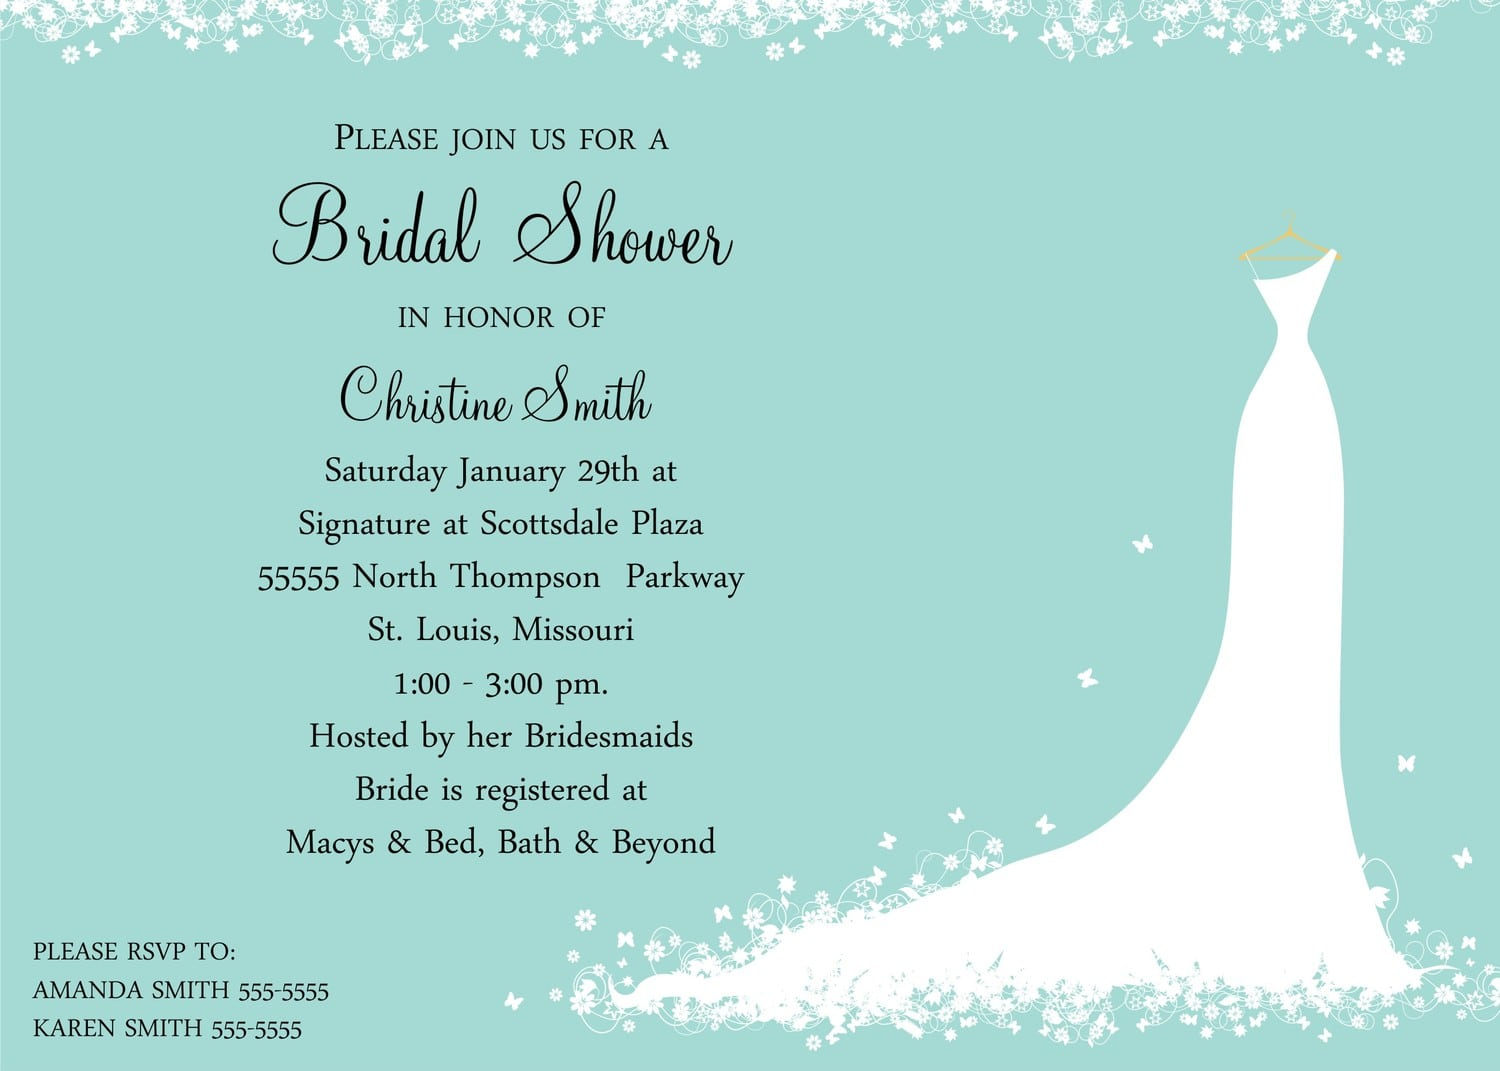 17 Best Images About Bridal Shower Invitations On Pinterest